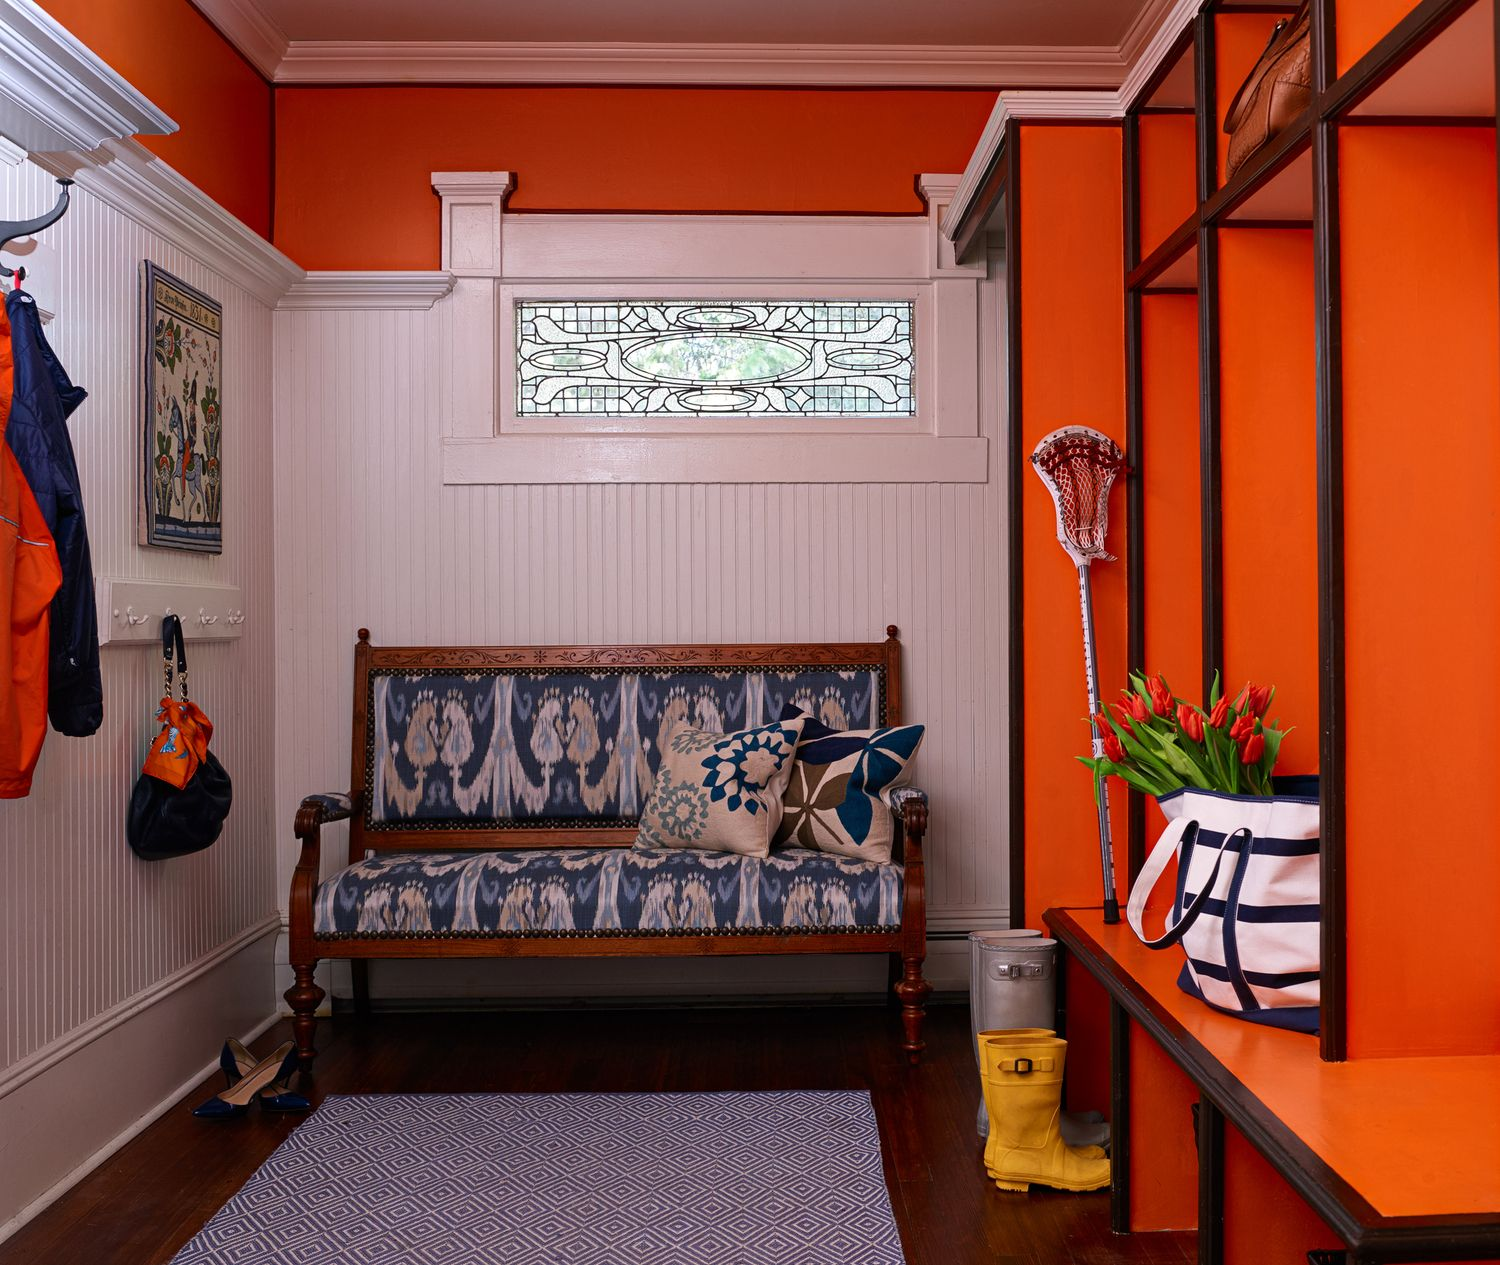 Hermes orange mudroom with vintage bench covered in ikat fabric by k k interior design for Bergen county interior designers